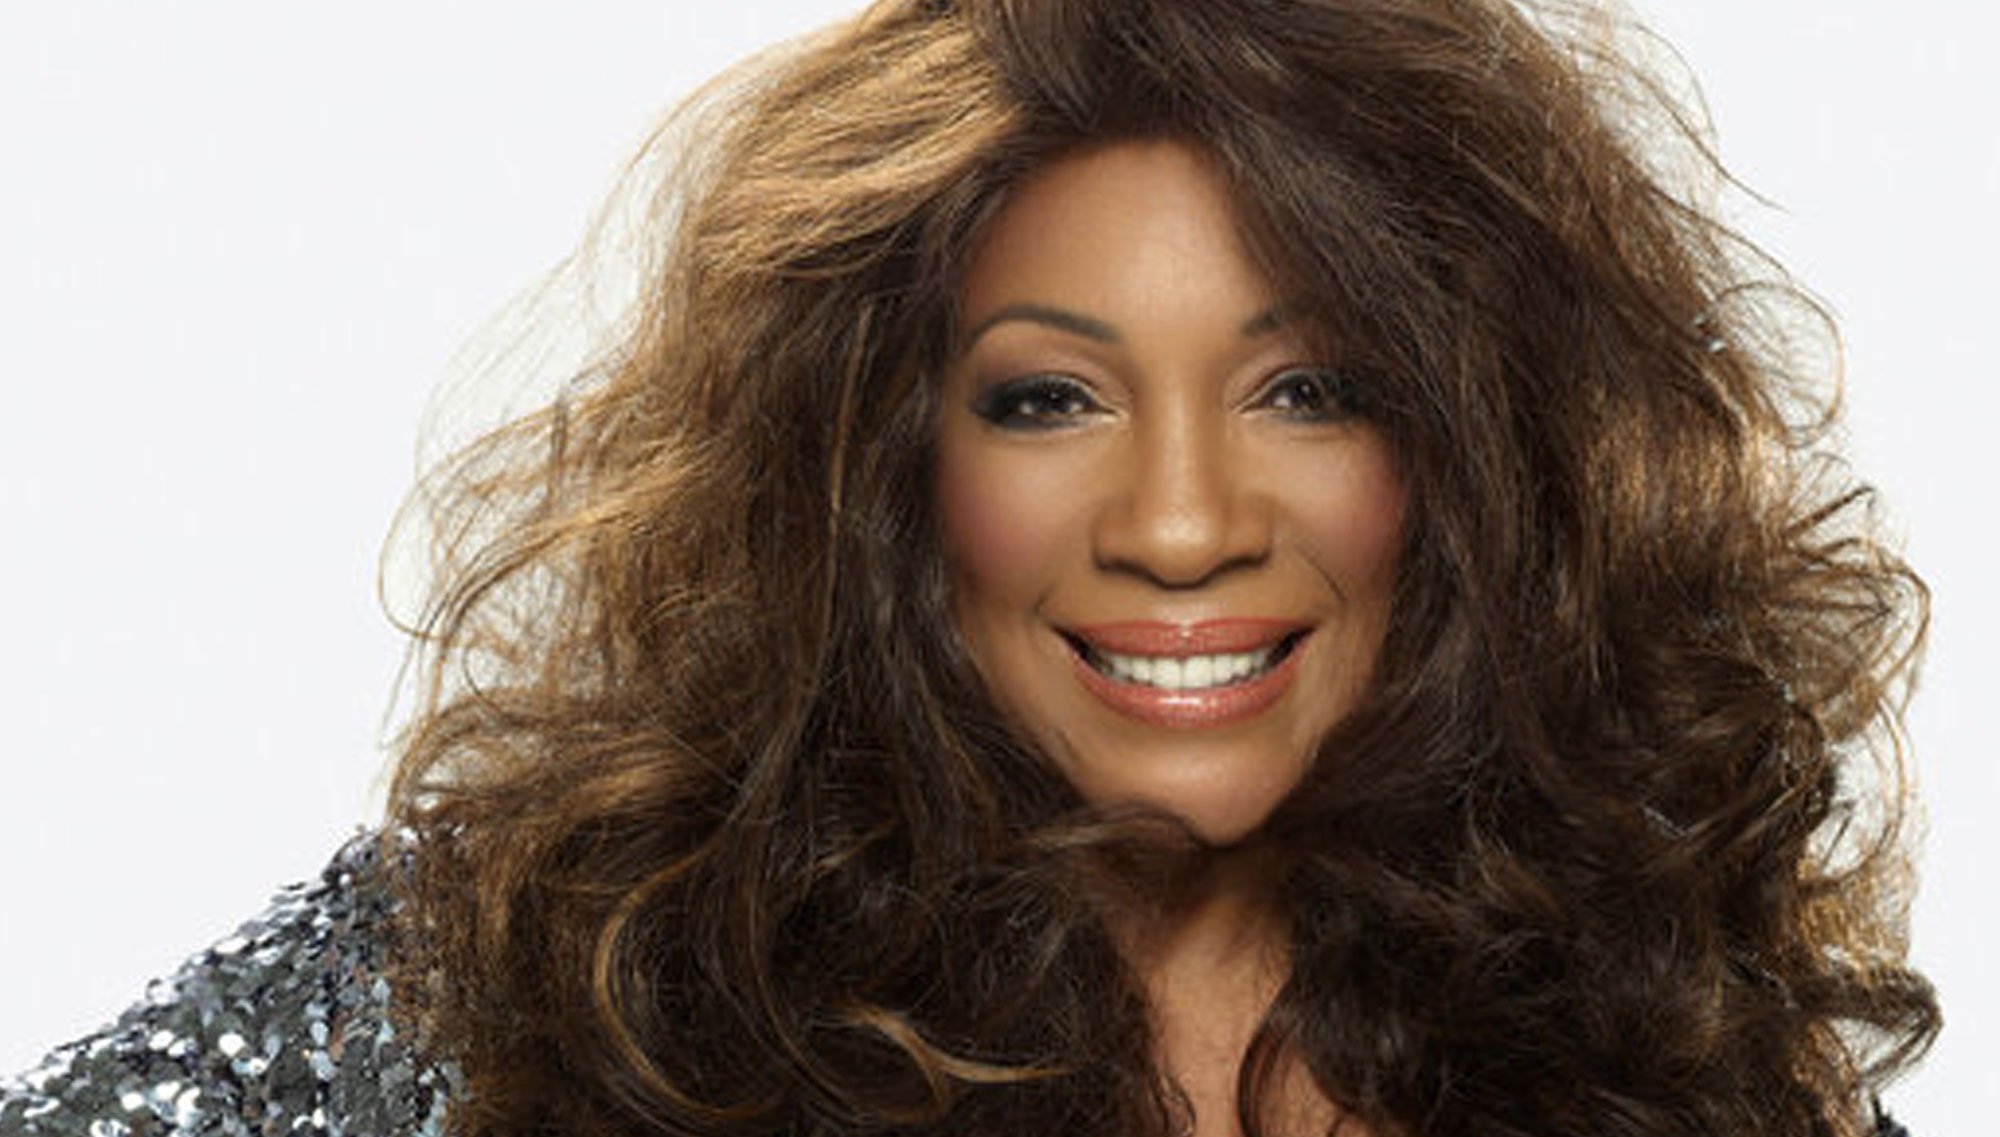 MARY WILSON  <h6>OF THE SUPREMES  </h6><h5>October 22  </h5>